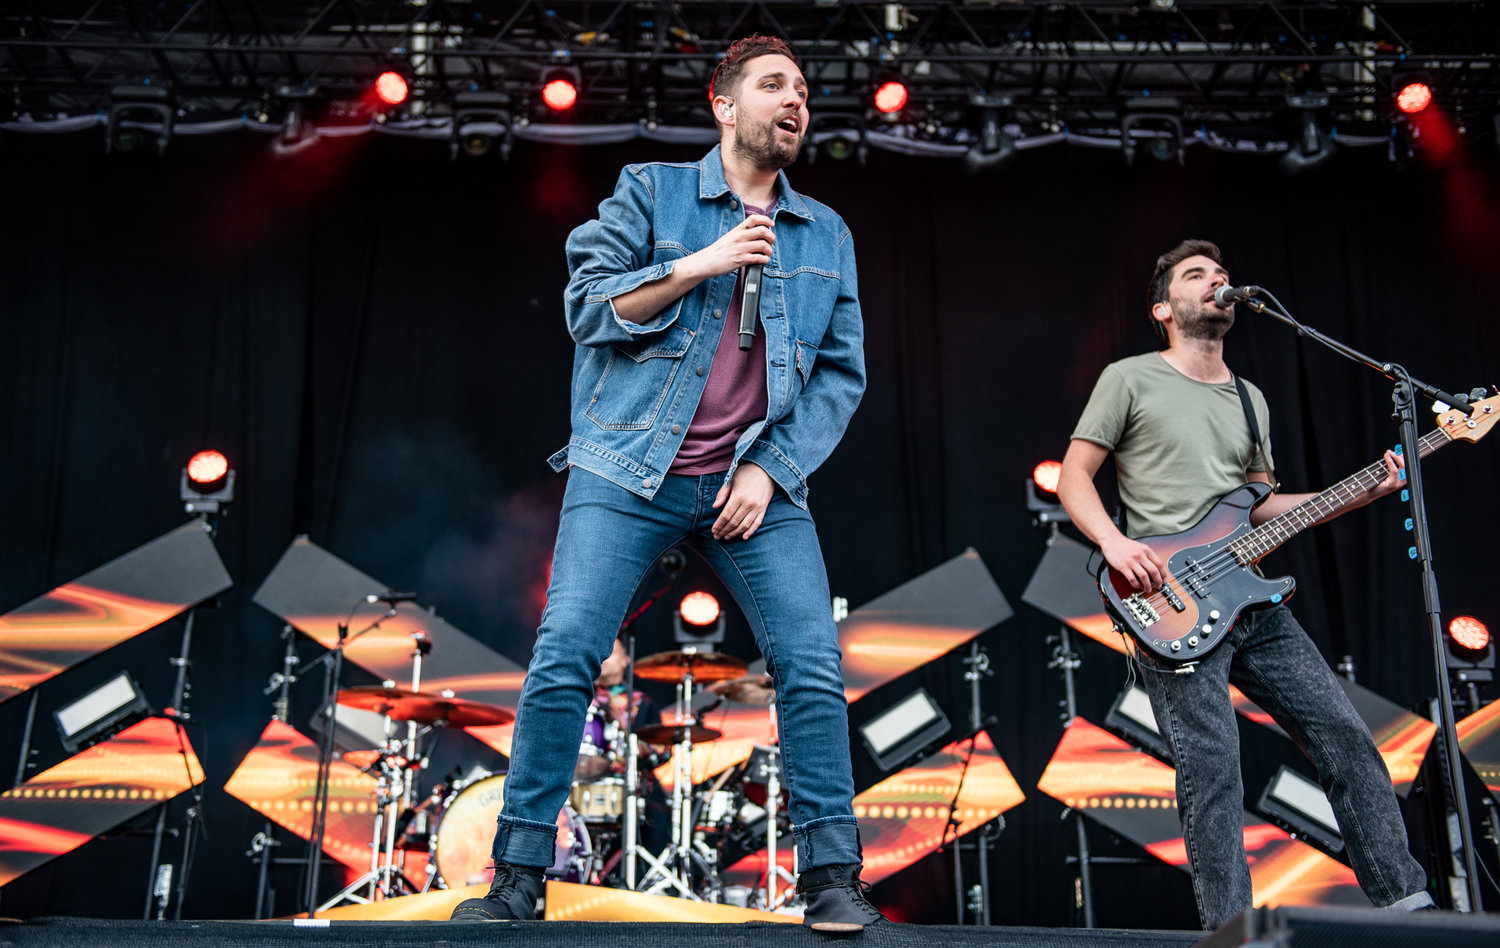 YOU ME AT SIX PERFORMING ON THE MAIN STAGE ON FIRST DAY OF THIS IS TOMORROW 2019 IN NEWCASTLE PICTURE BY: CALUM BUCHAN PHOTOGRAPHY